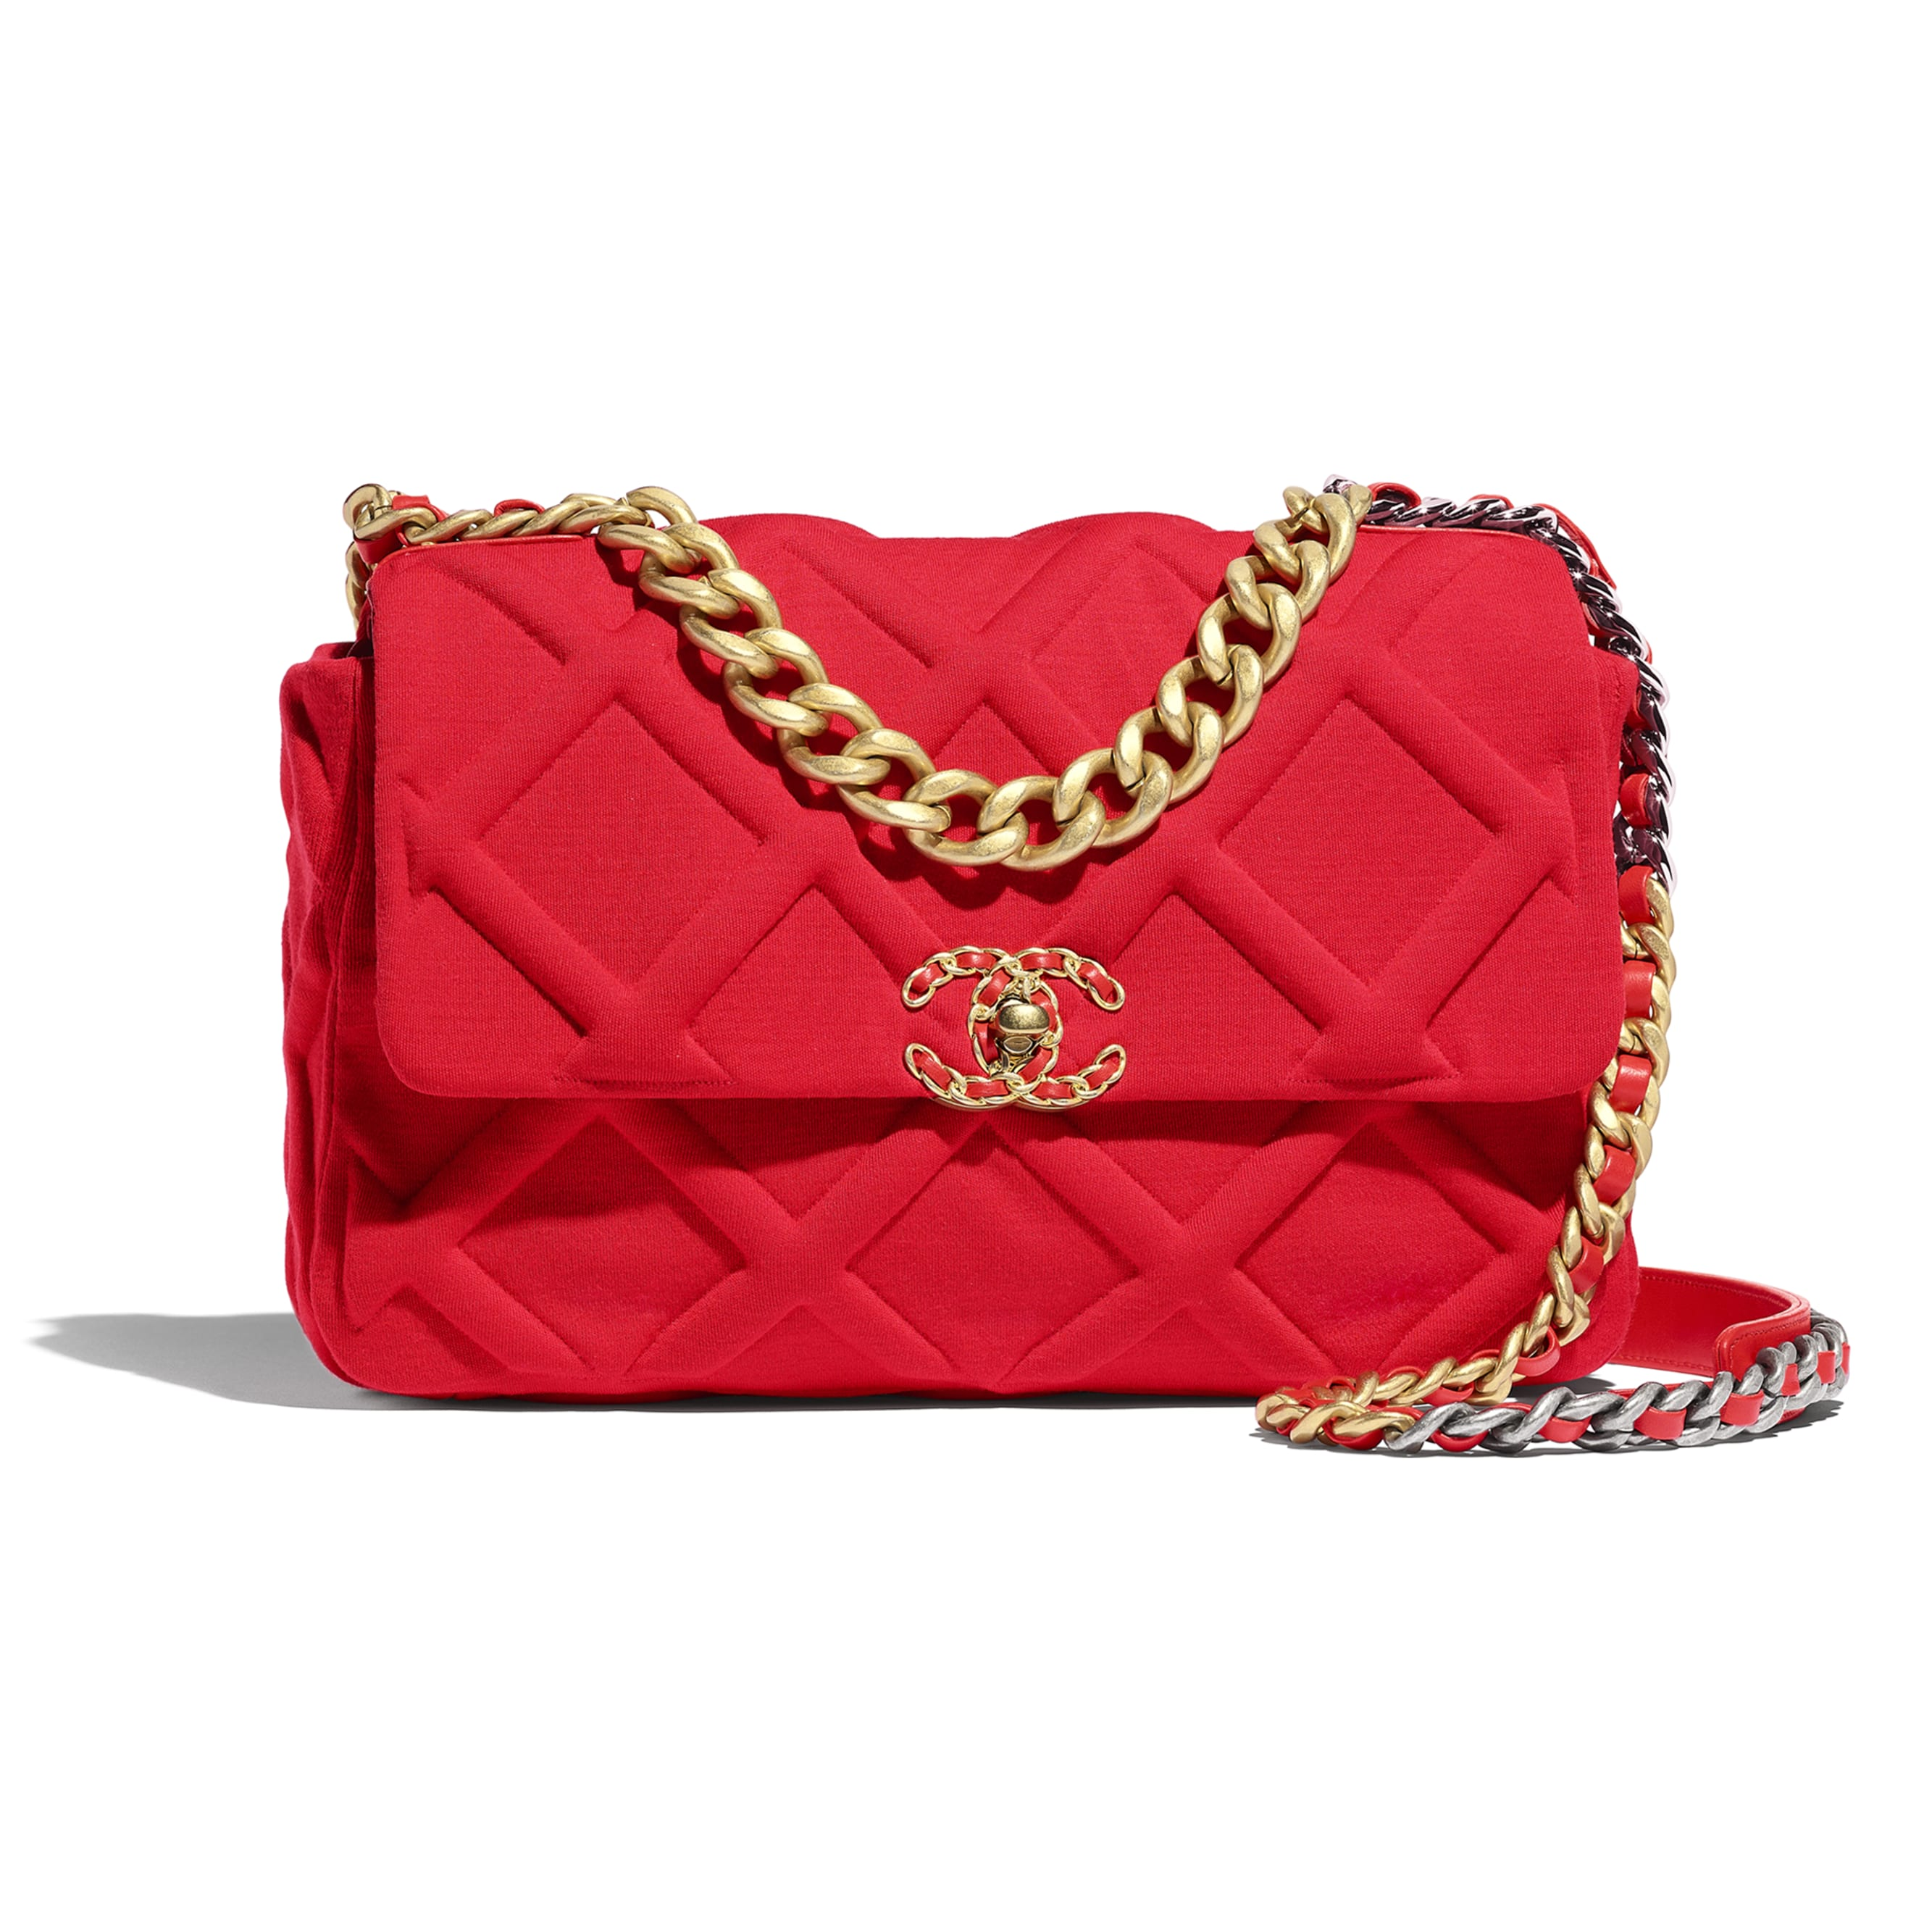 CHANEL 19 Large Flap Bag - Red - Jersey, Gold-Tone, Silver-Tone & Ruthenium-Finish Metal - Default view - see standard sized version